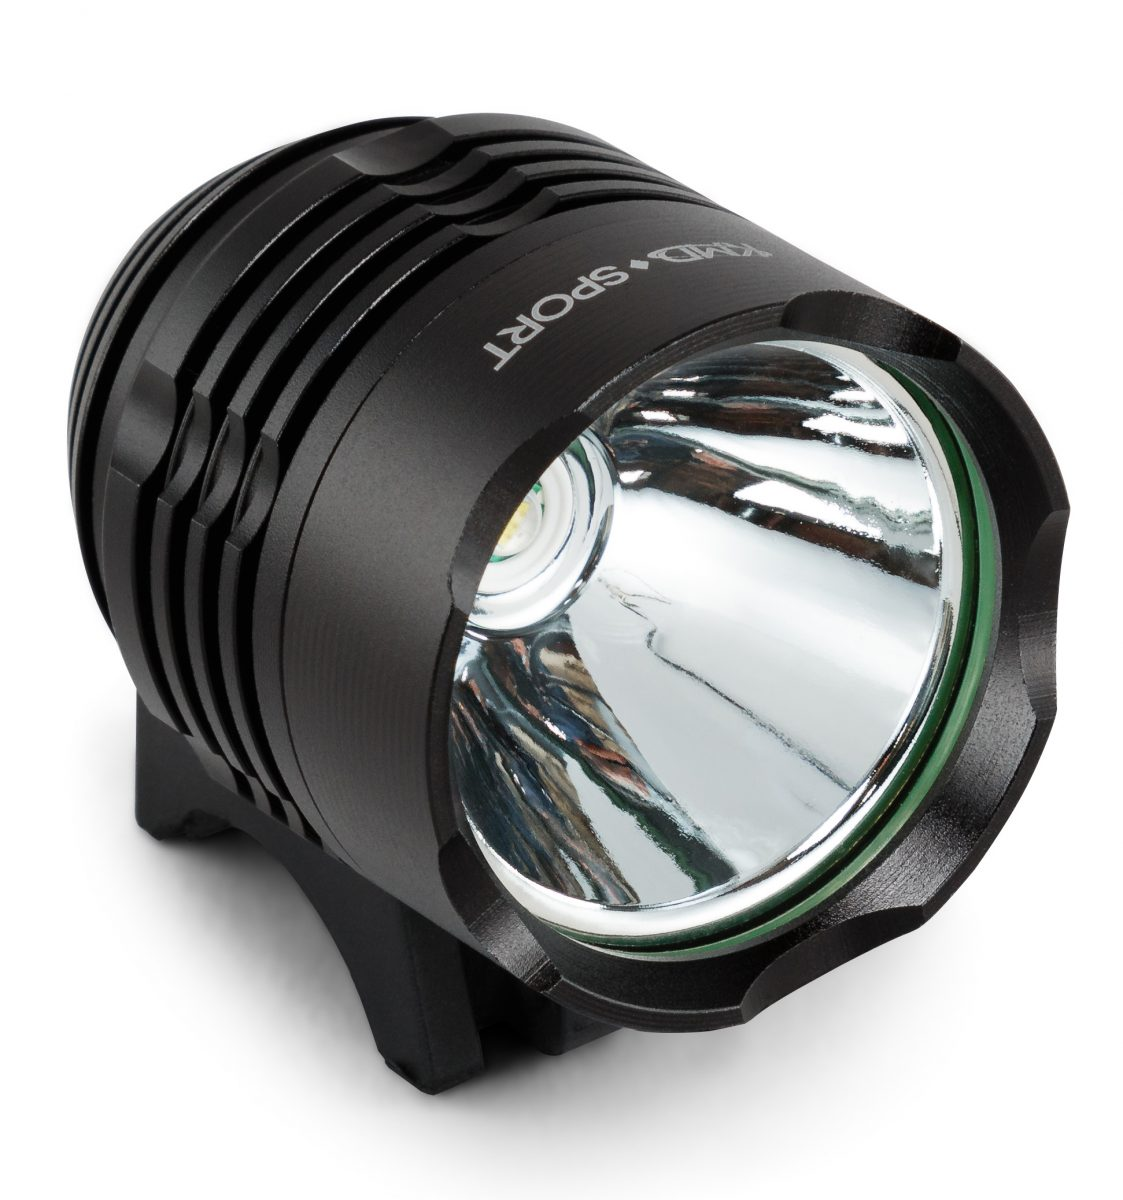 Extra Bright 1200 Lumens LED Front Bike Headlight with ...